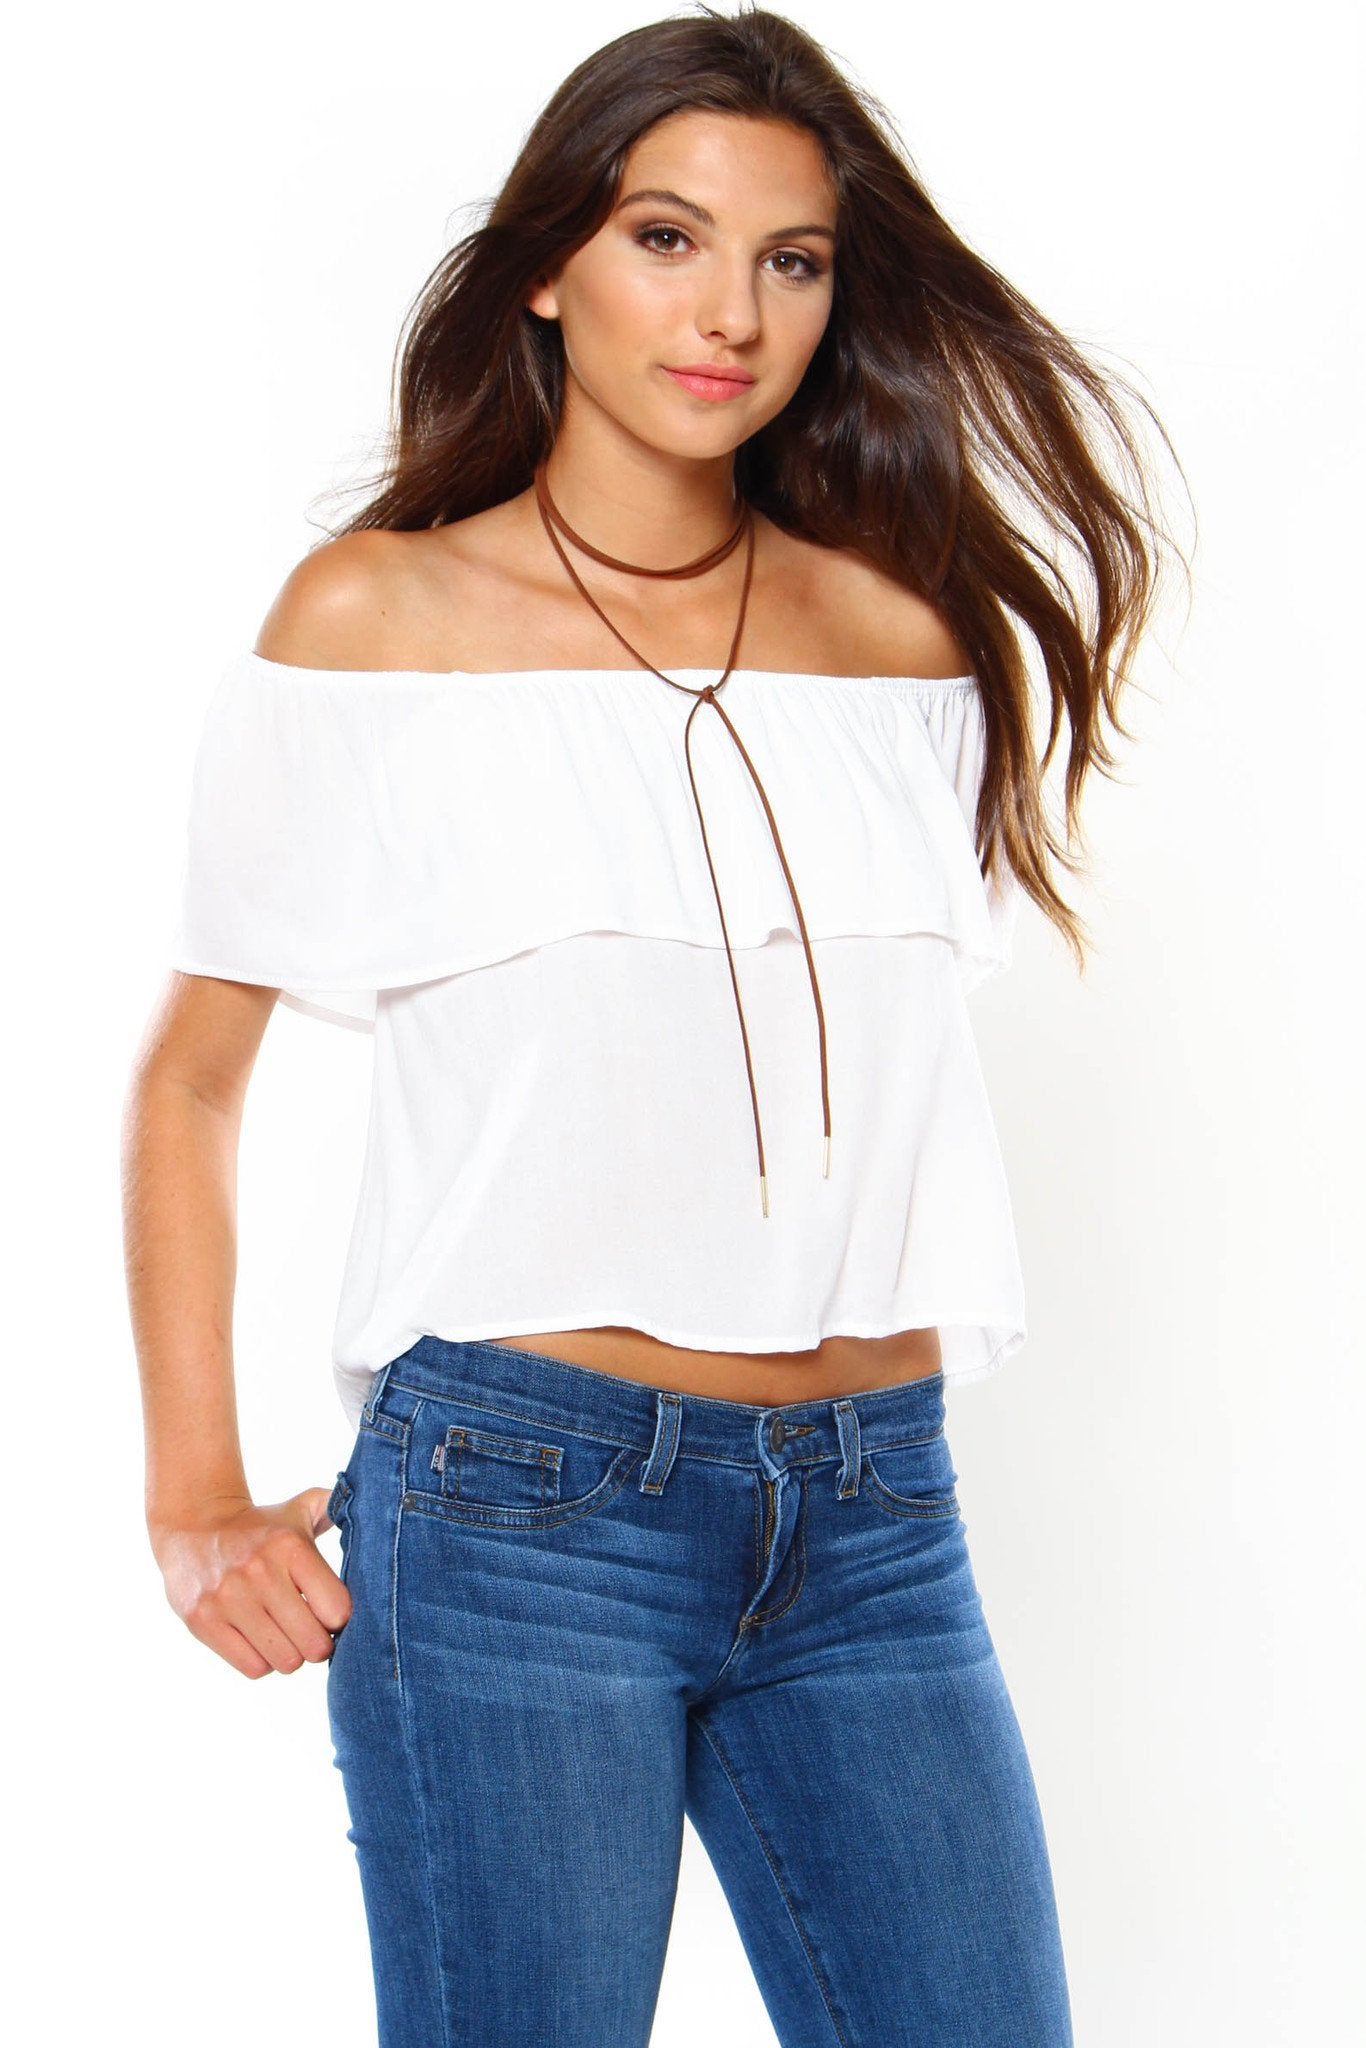 Wrap Up Bolo Necklace - Brown